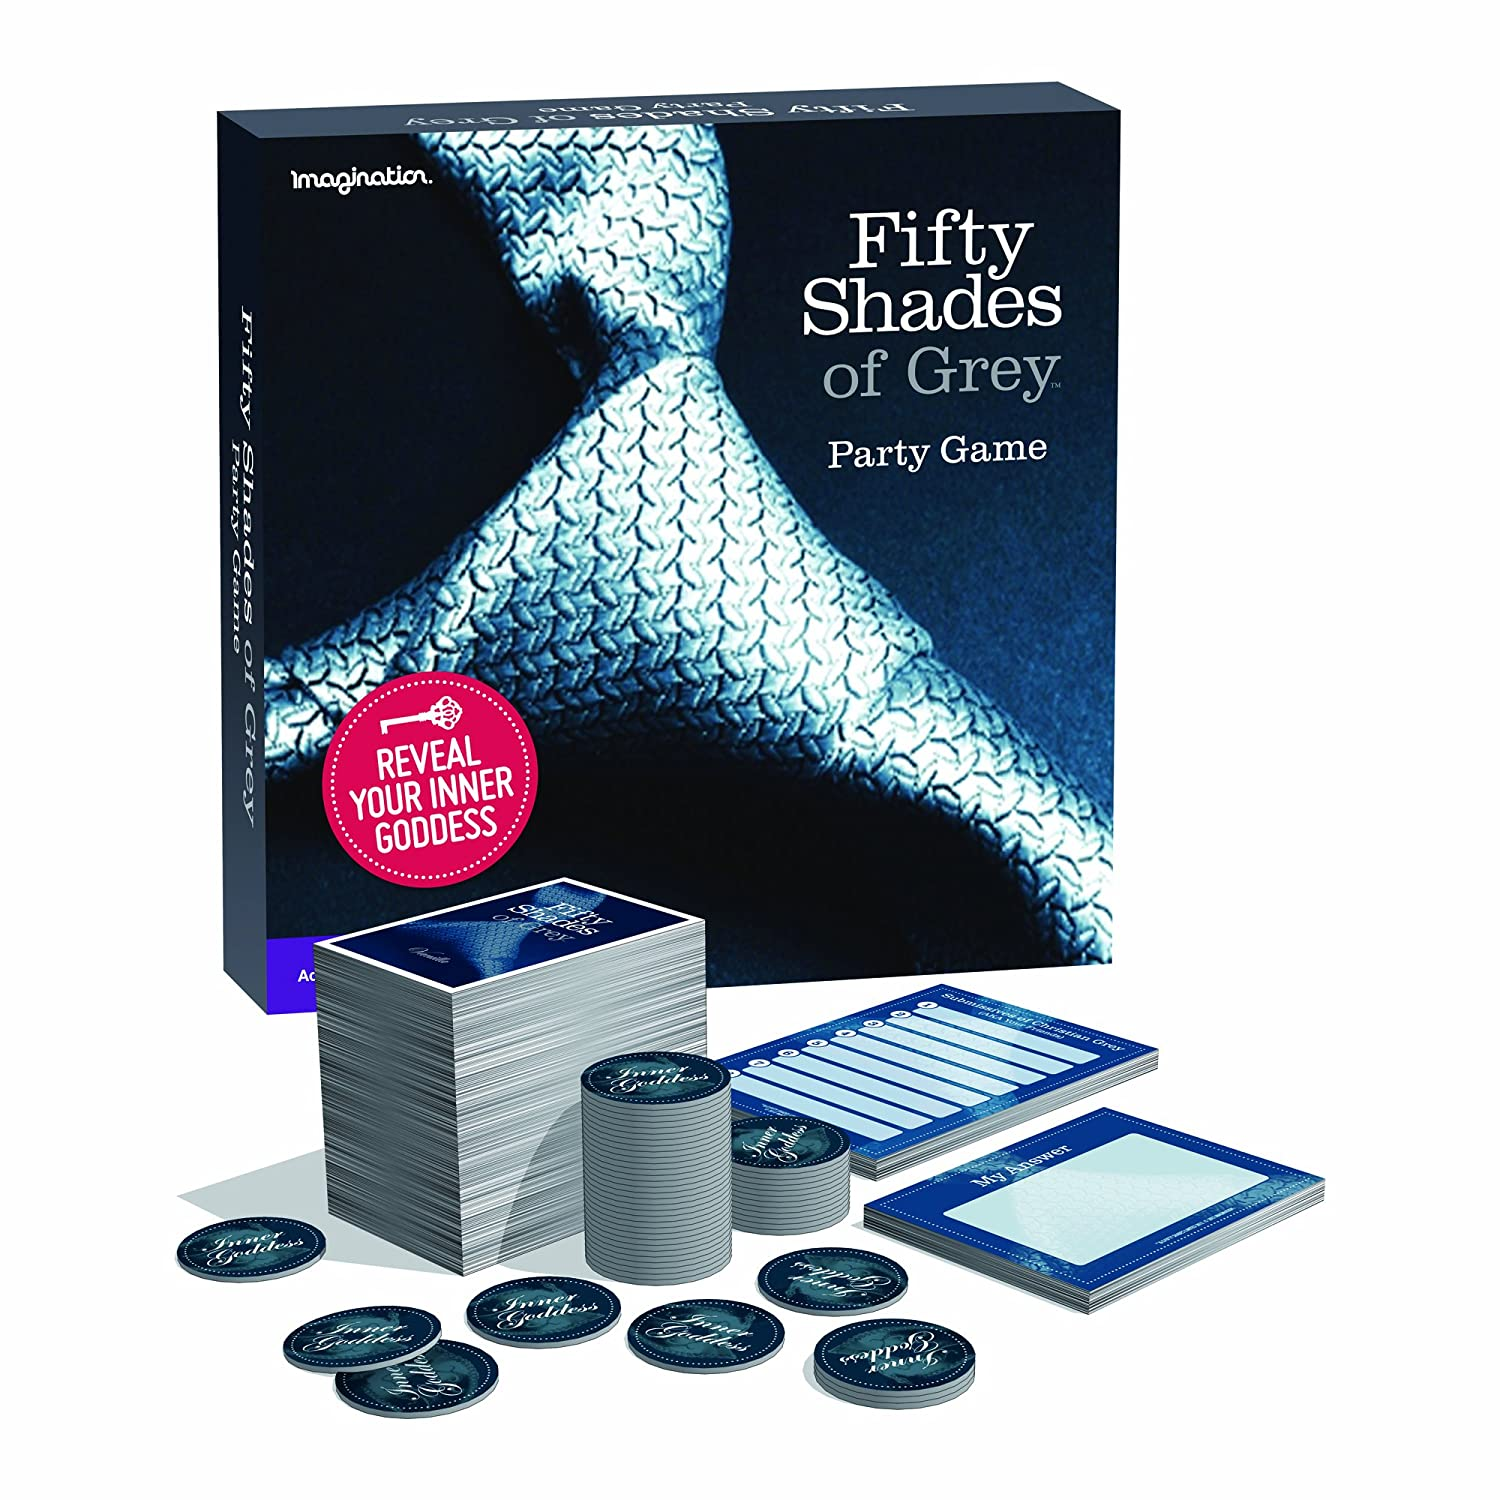 Fifty inspired gift ideas 50 shades of grey trilogy fan page for Fifty shade of grey